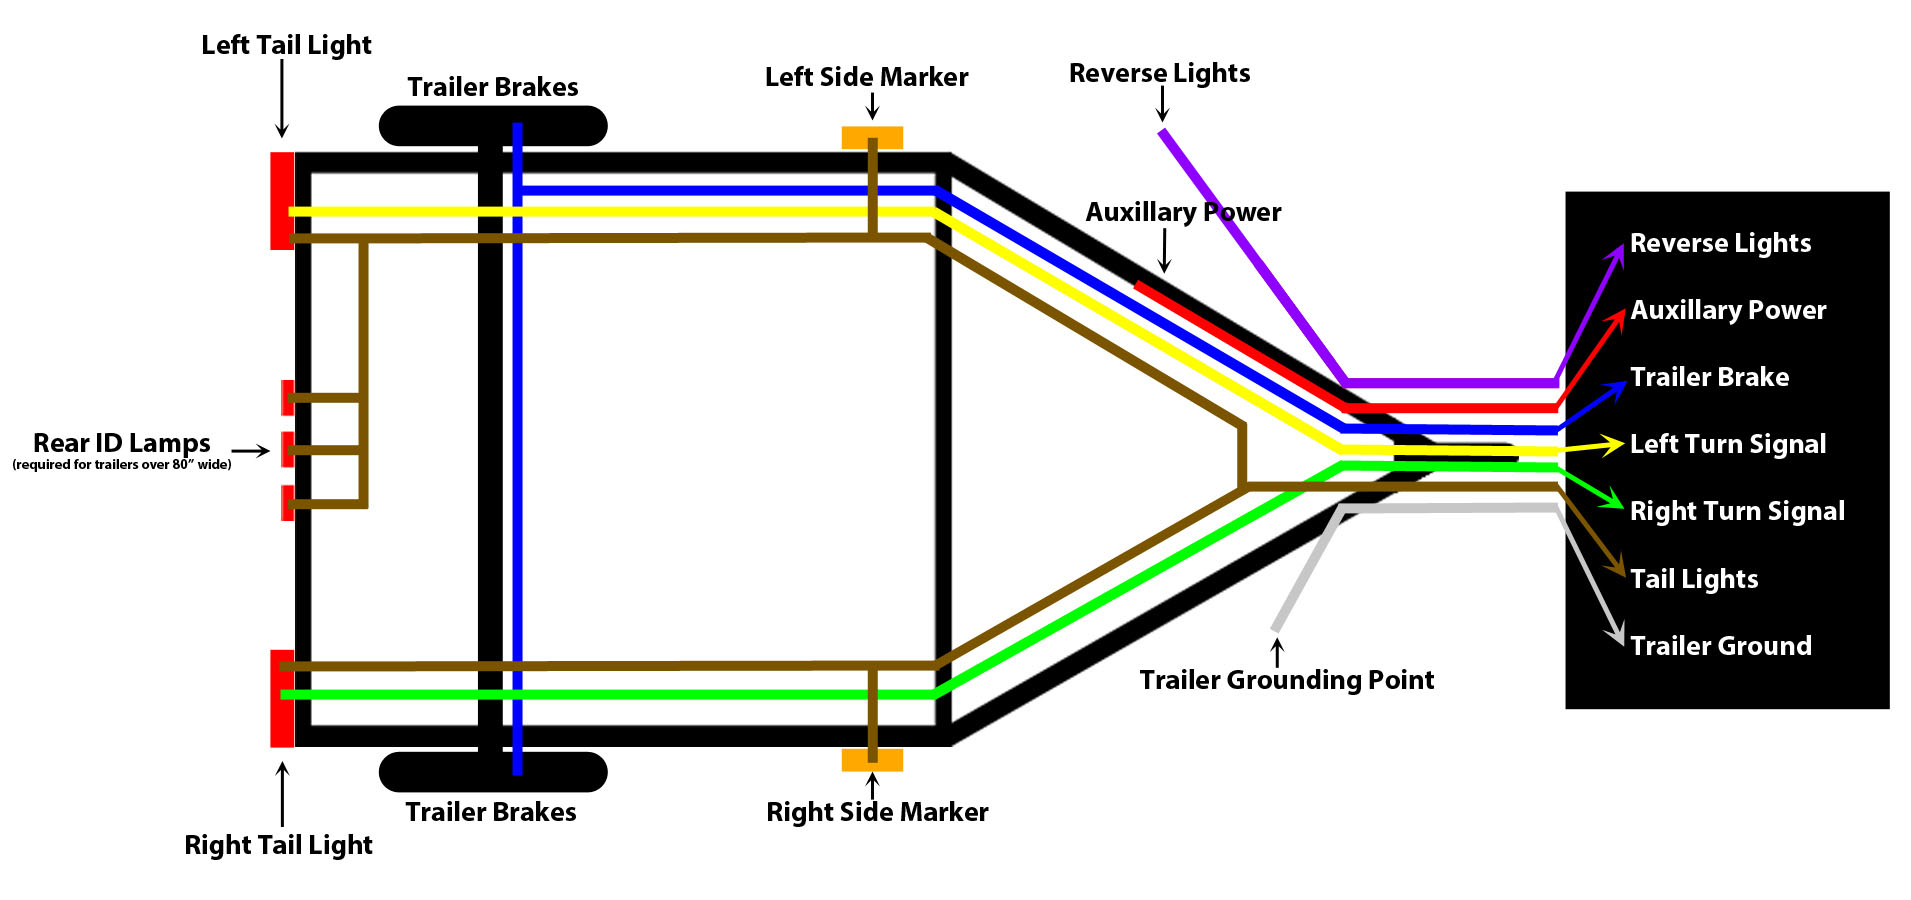 Wiring Diagram Ifor Williams Trailer Lights | Manual E-Books - Ifor Williams Trailer Wiring Diagram